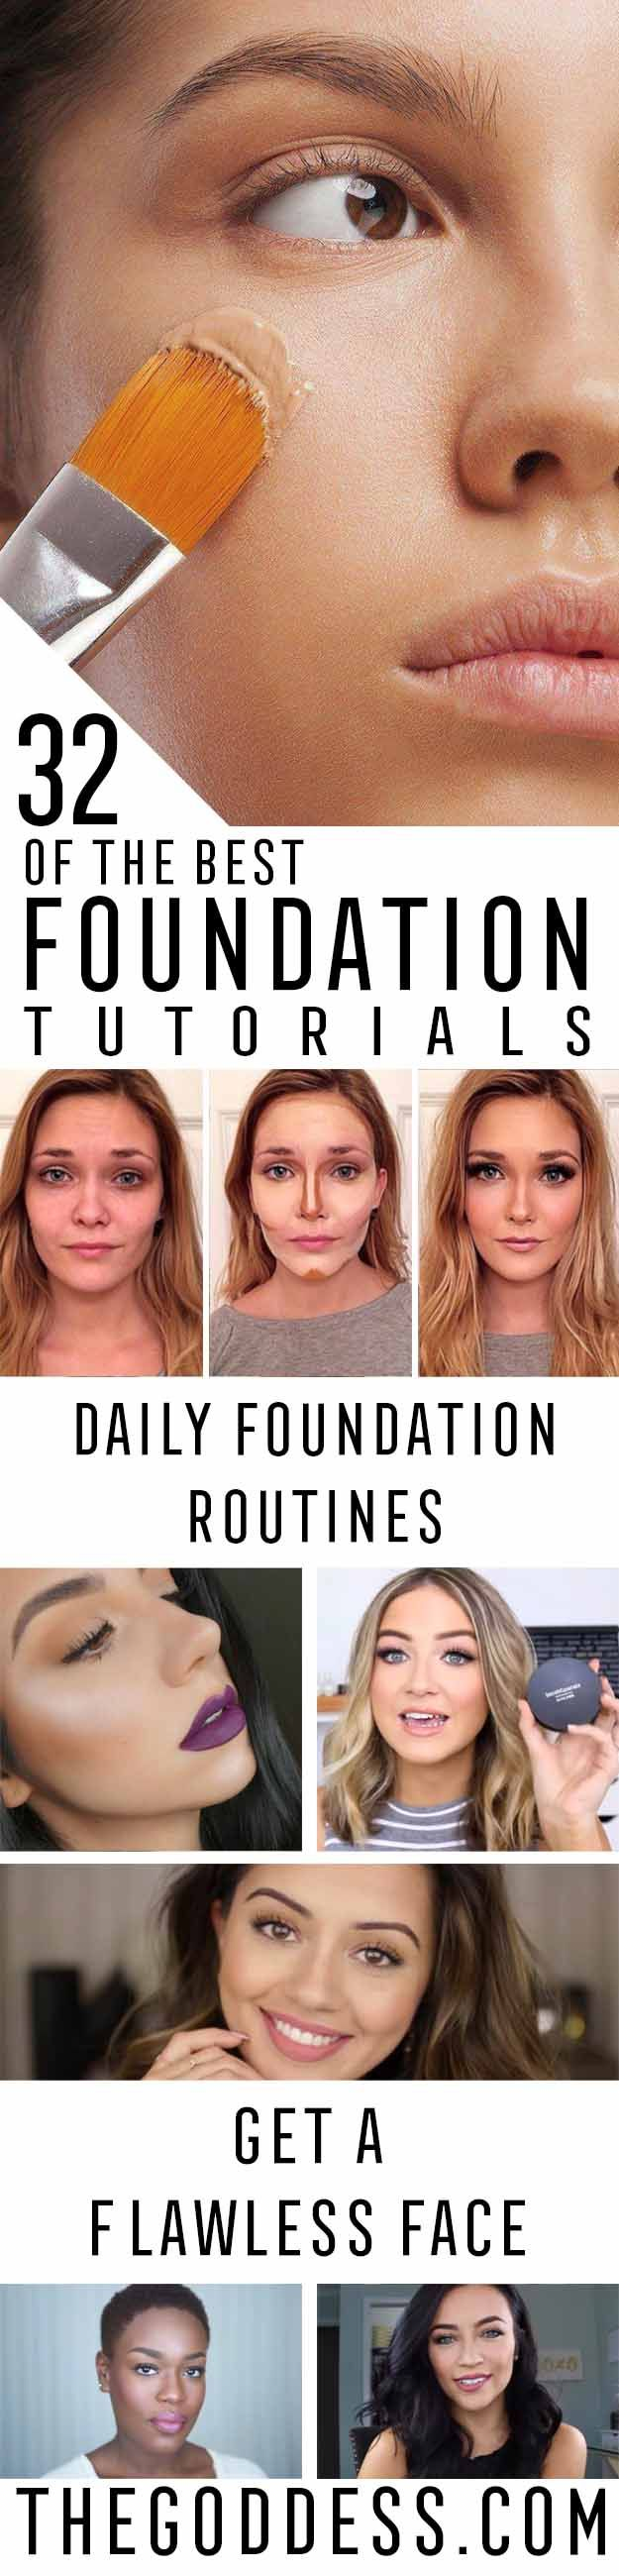 Best Foundation Tutorials - Step By Step Guides For Flawless Natural Skin, Even For Acne and Oily Skin - Check out these Contour Tips and Tricks with Video Guides - All Sorts of Makeup Techniques that Work with Dark Skin or Pale Skin - thegoddess.com/best-foundation-tutorials